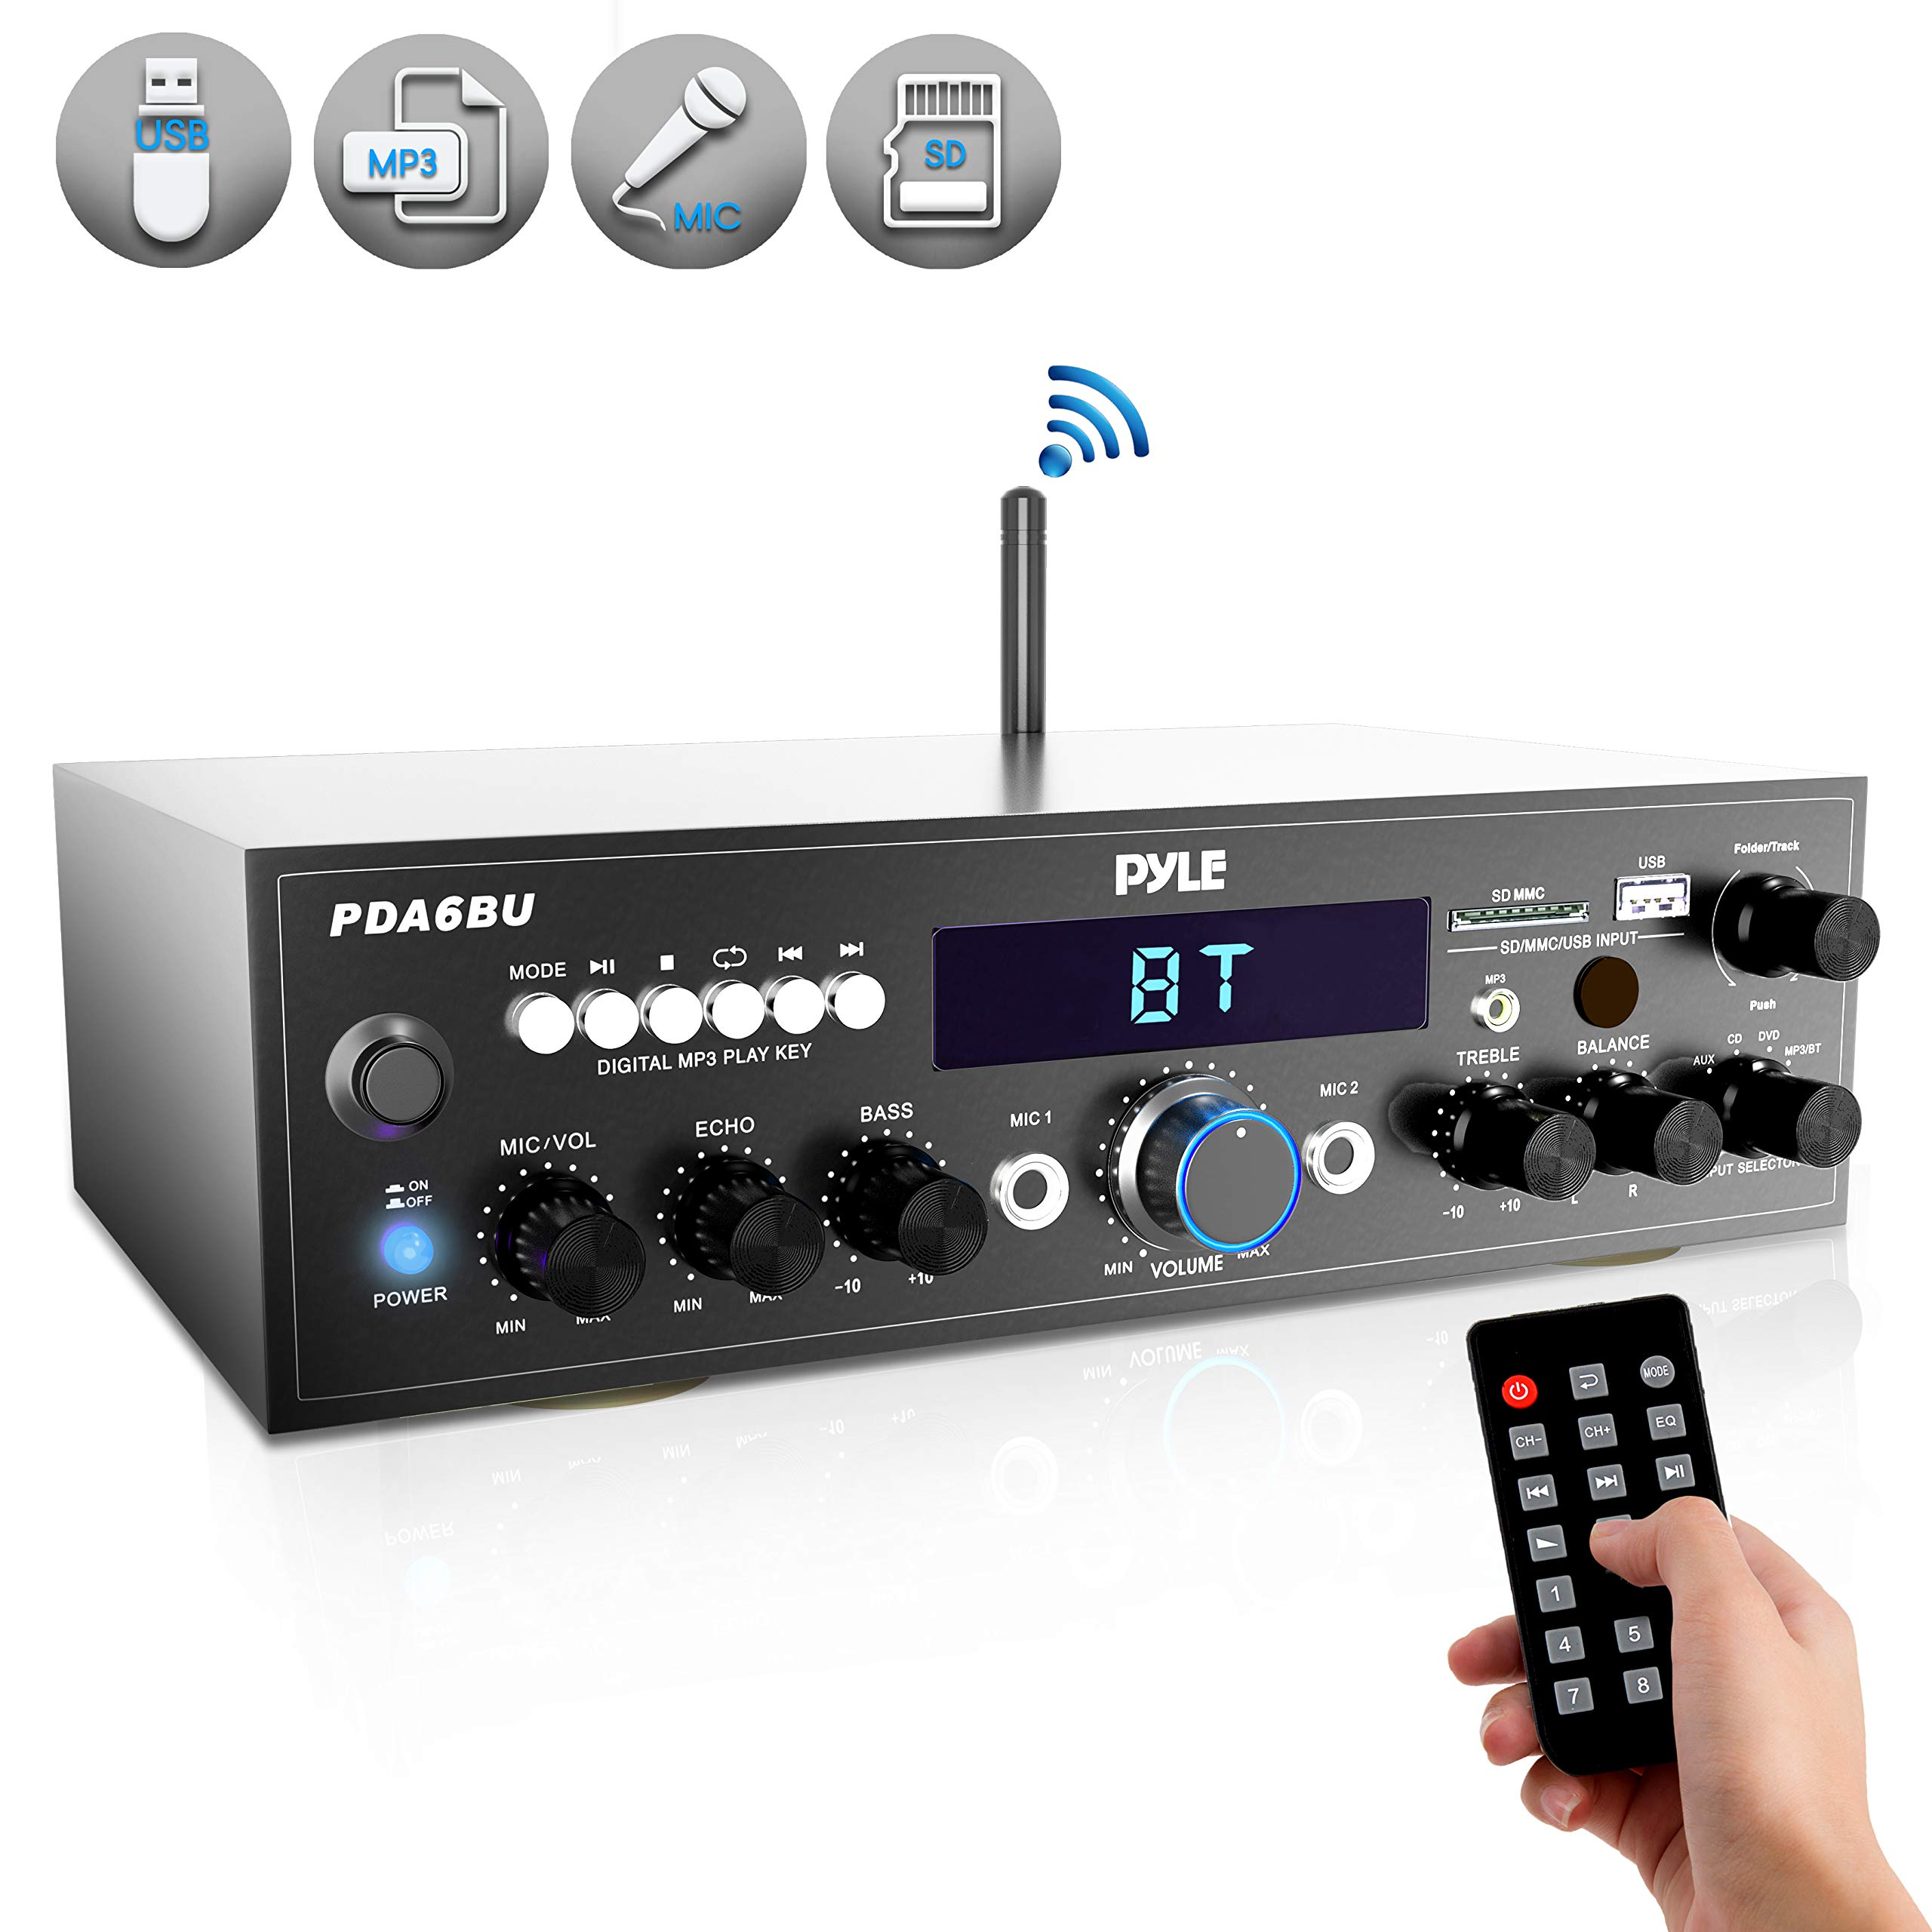 Wireless Bluetooth Power Amplifier System - 200W Dual Channel Sound Audio Stereo Receiver w/ USB, SD, AUX, MIC IN w/ Echo, Radio, LCD - For Home Theater Entertainment via RCA, Studio Use - Pyle PDA6BU by Pyle